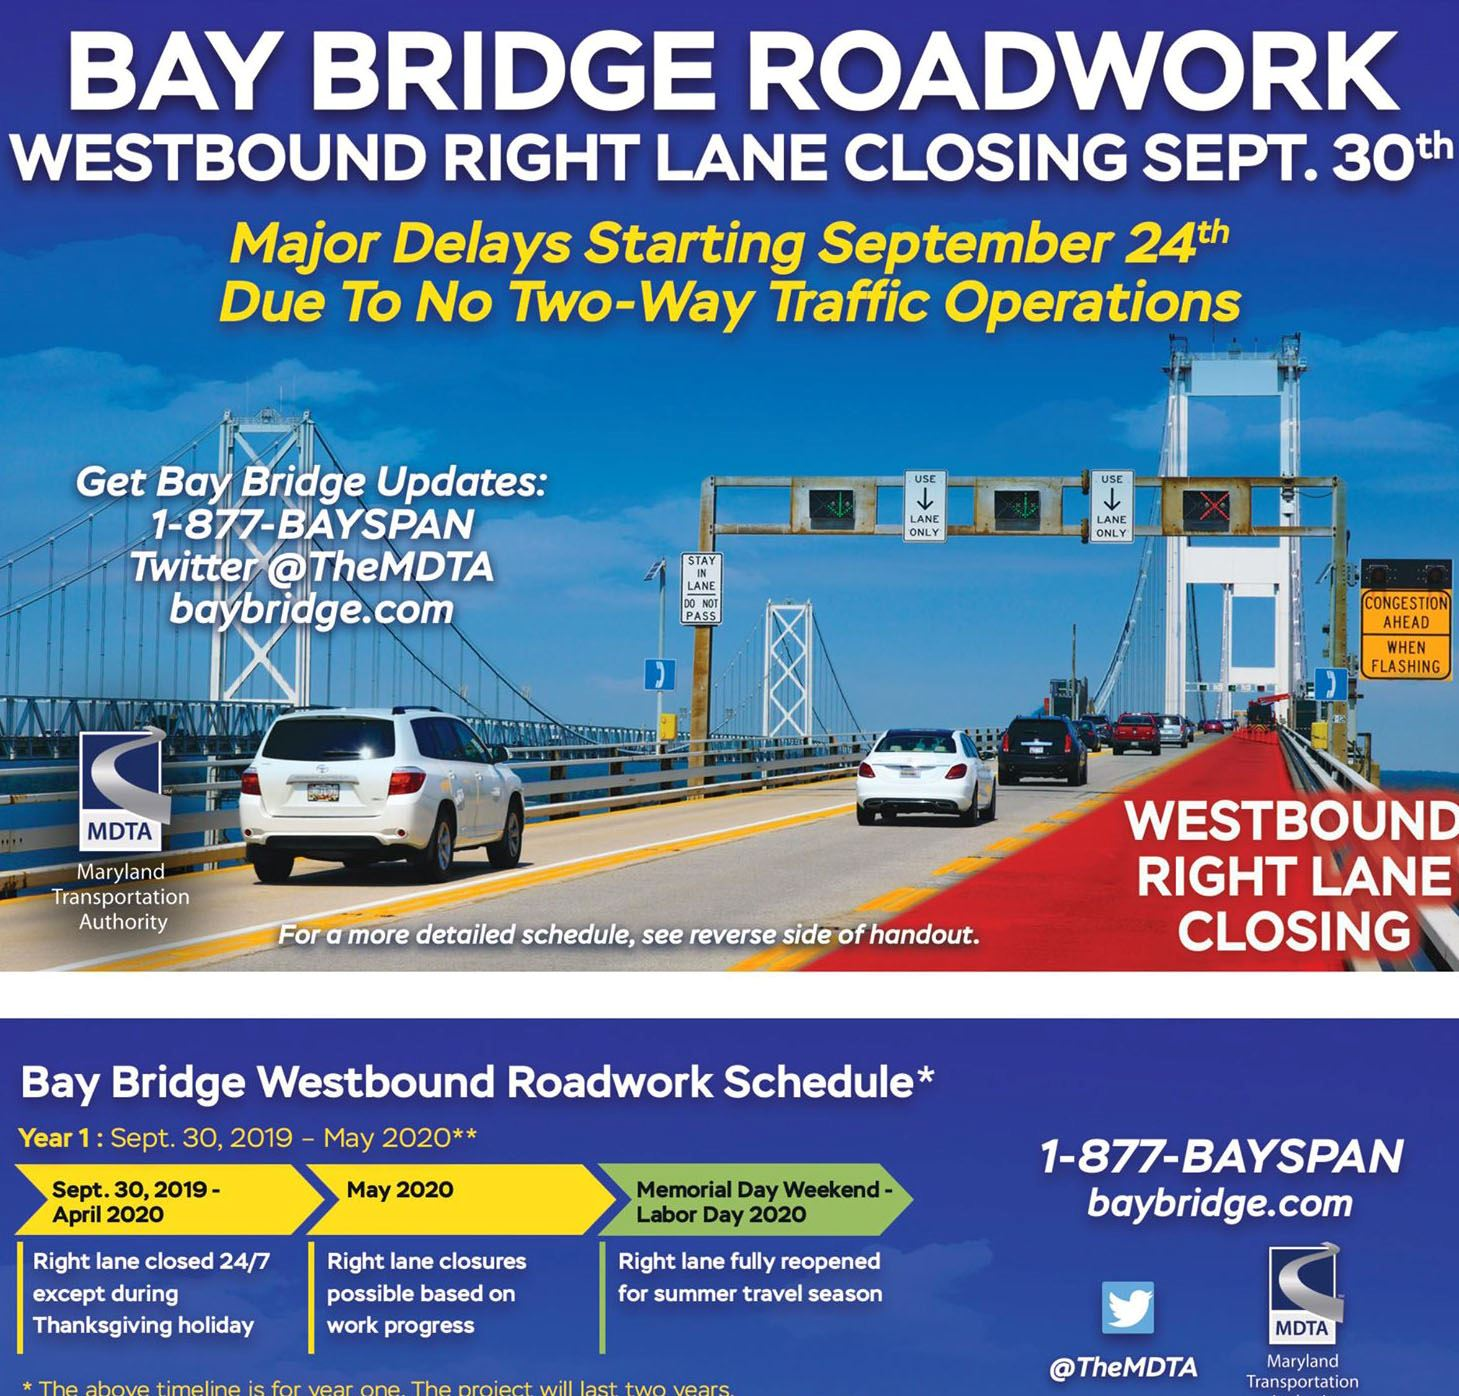 Bay Bridge Roadwork WB R Lane Closing Major Delays SPOTLIGHT